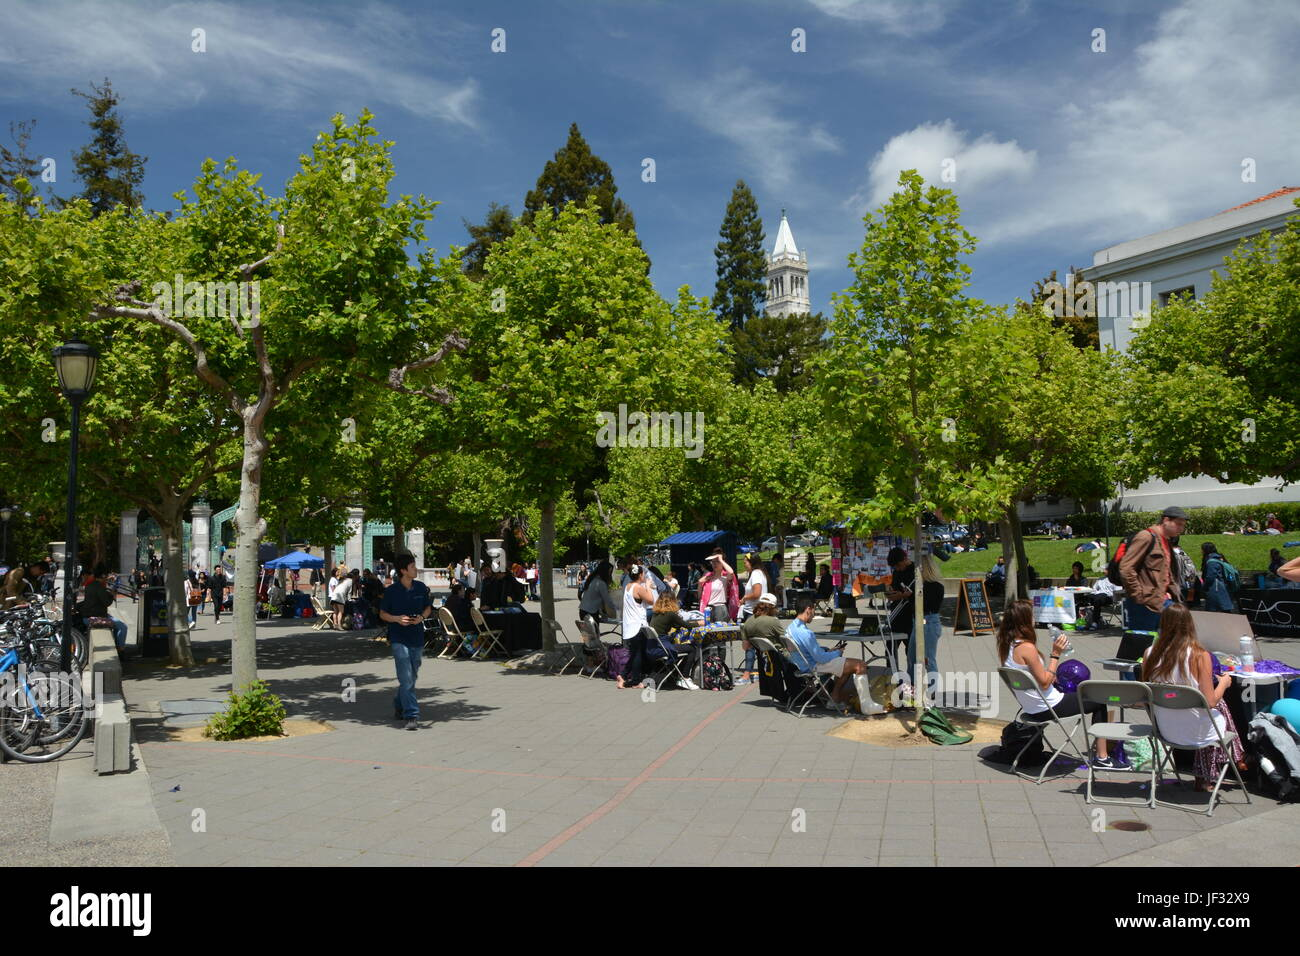 Impressions from the University of California - Berkeley